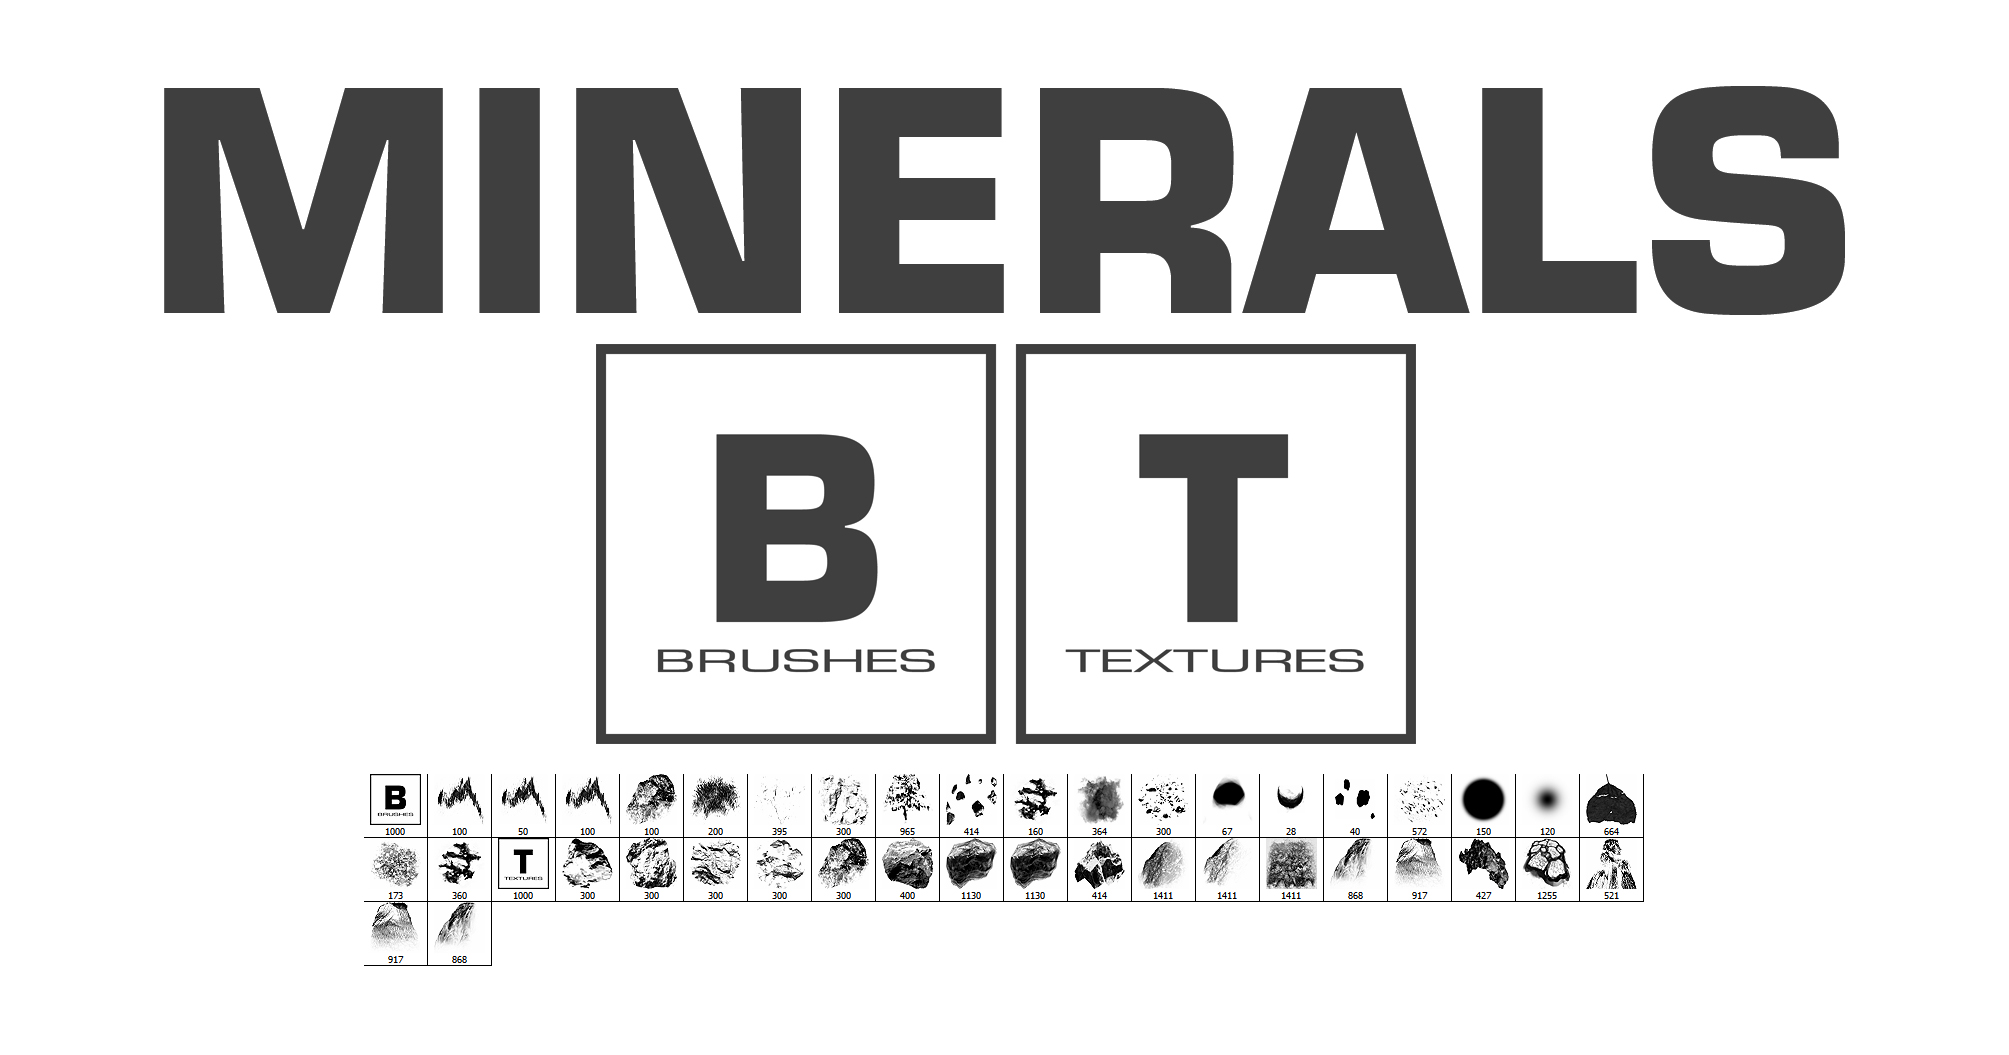 Minerals Brushes